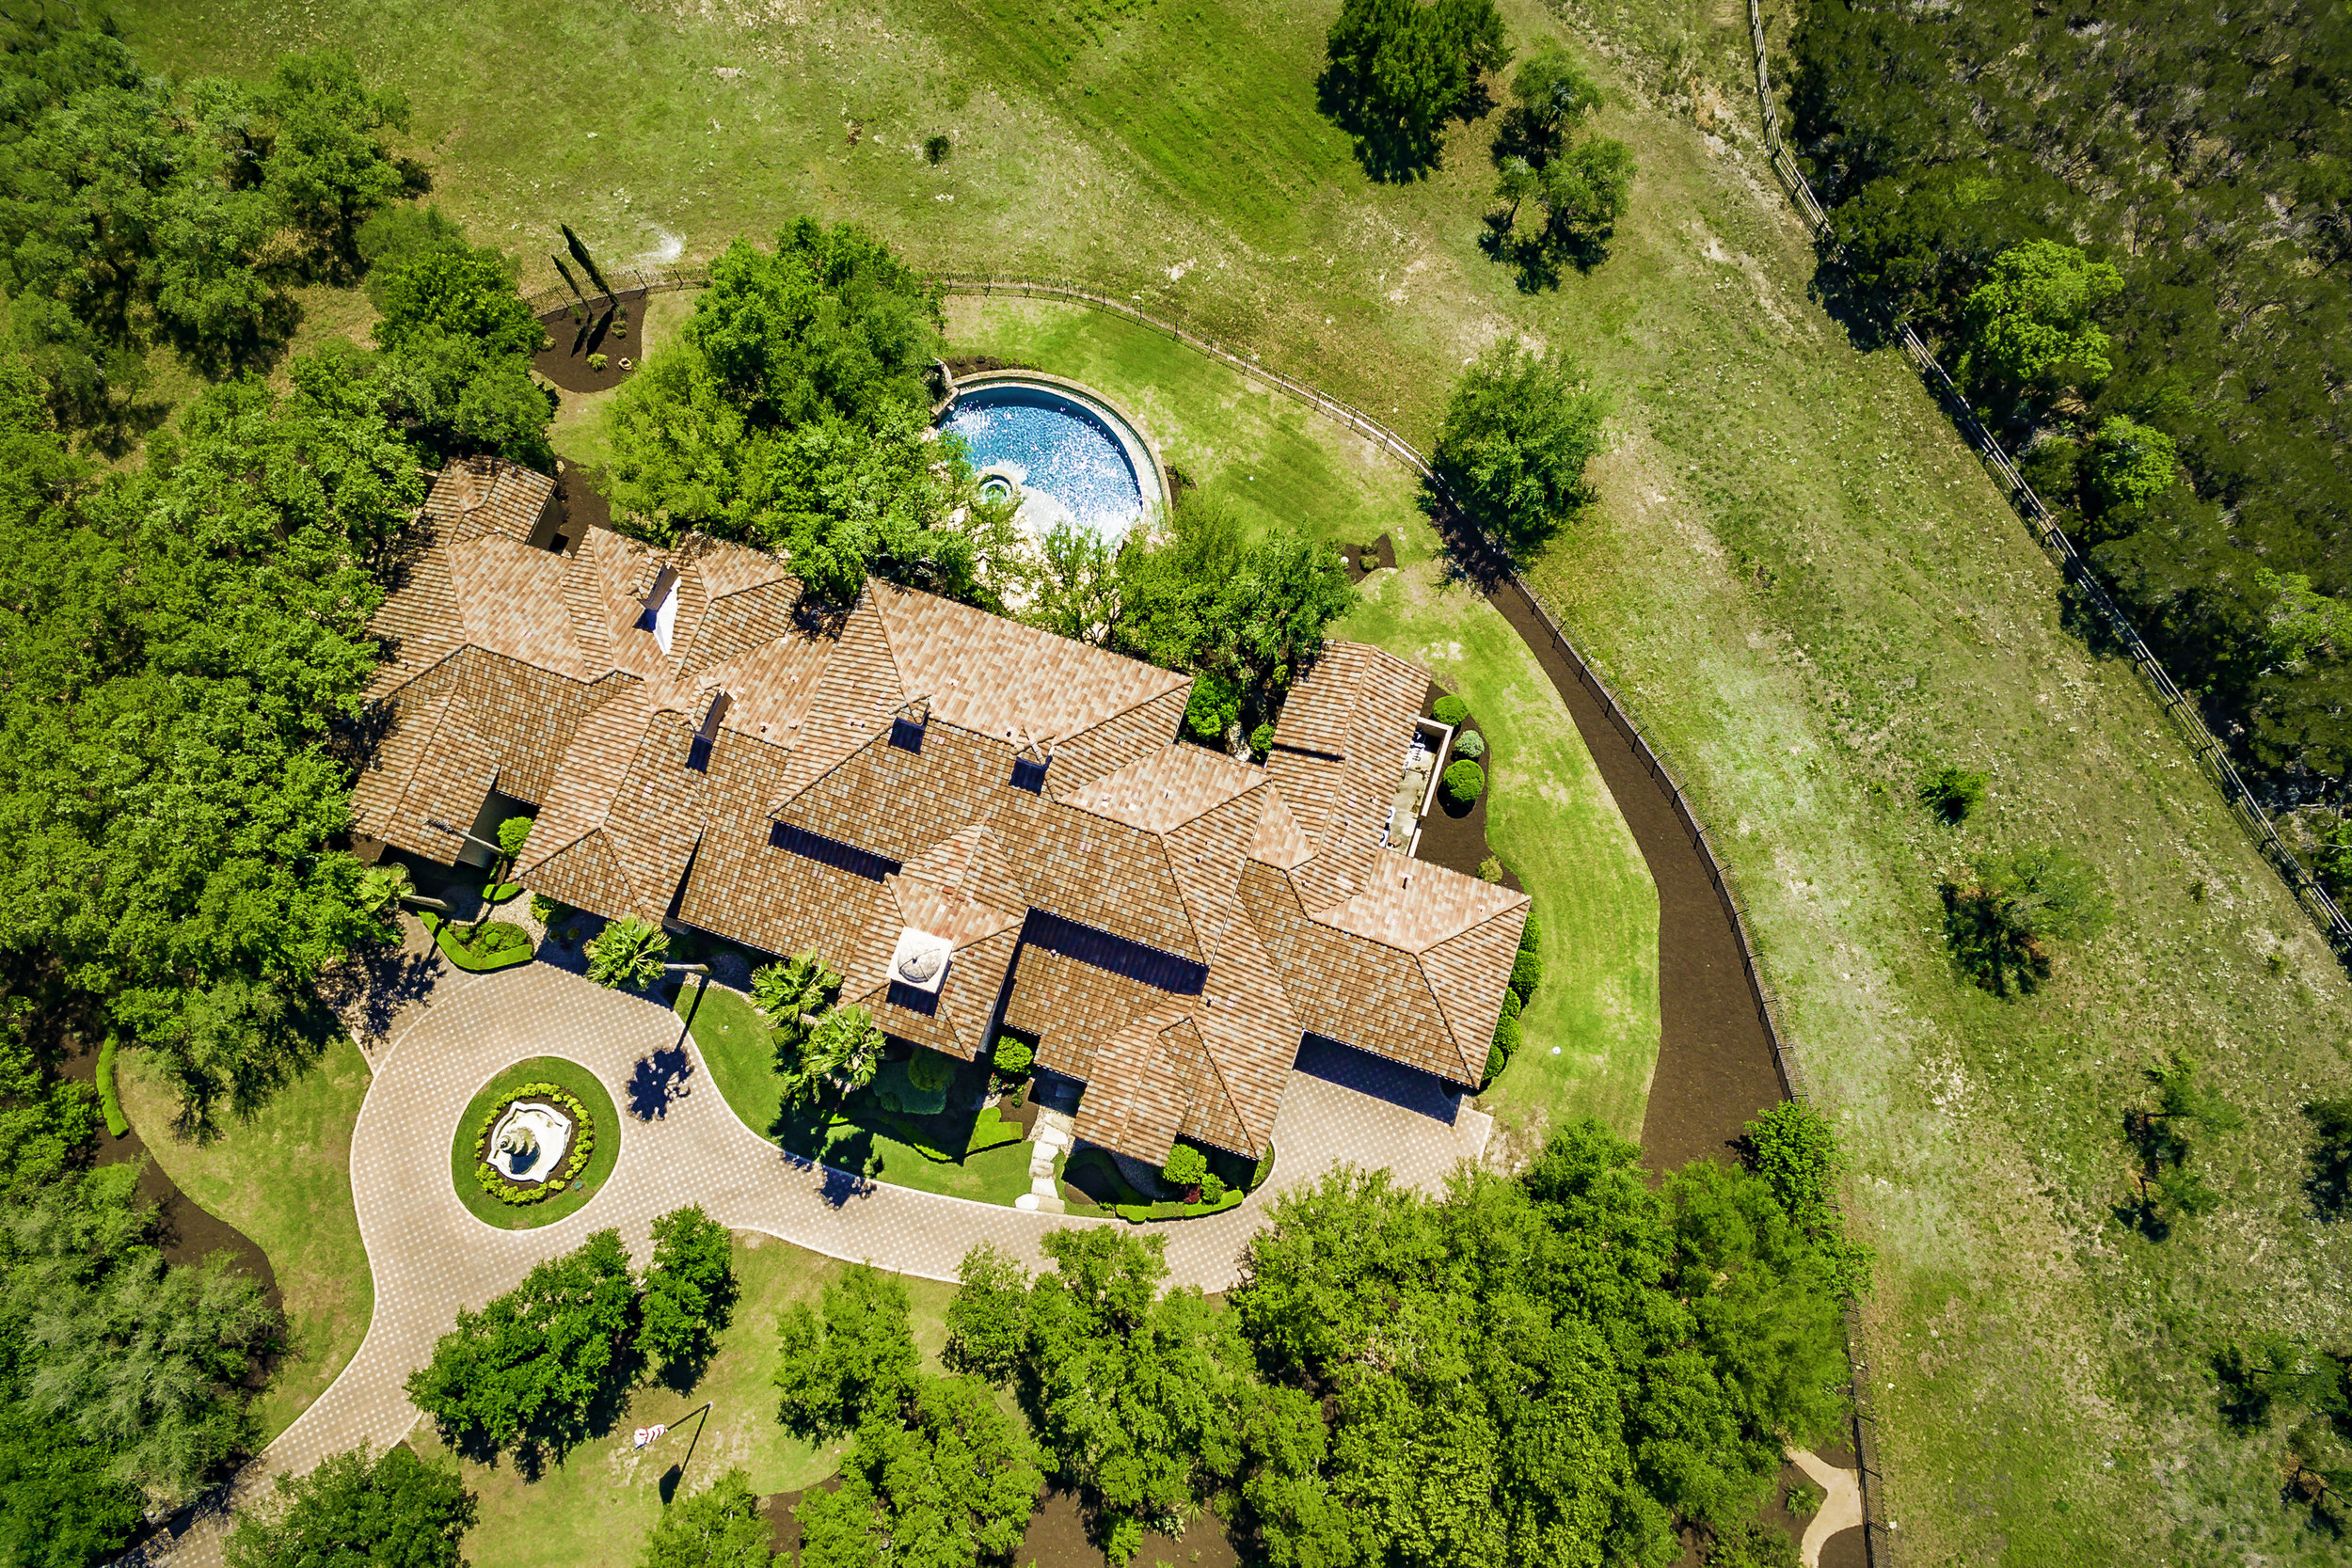 2502 Dominion Hill Aerial - Valerie DiFabio - April 2019-9.jpg